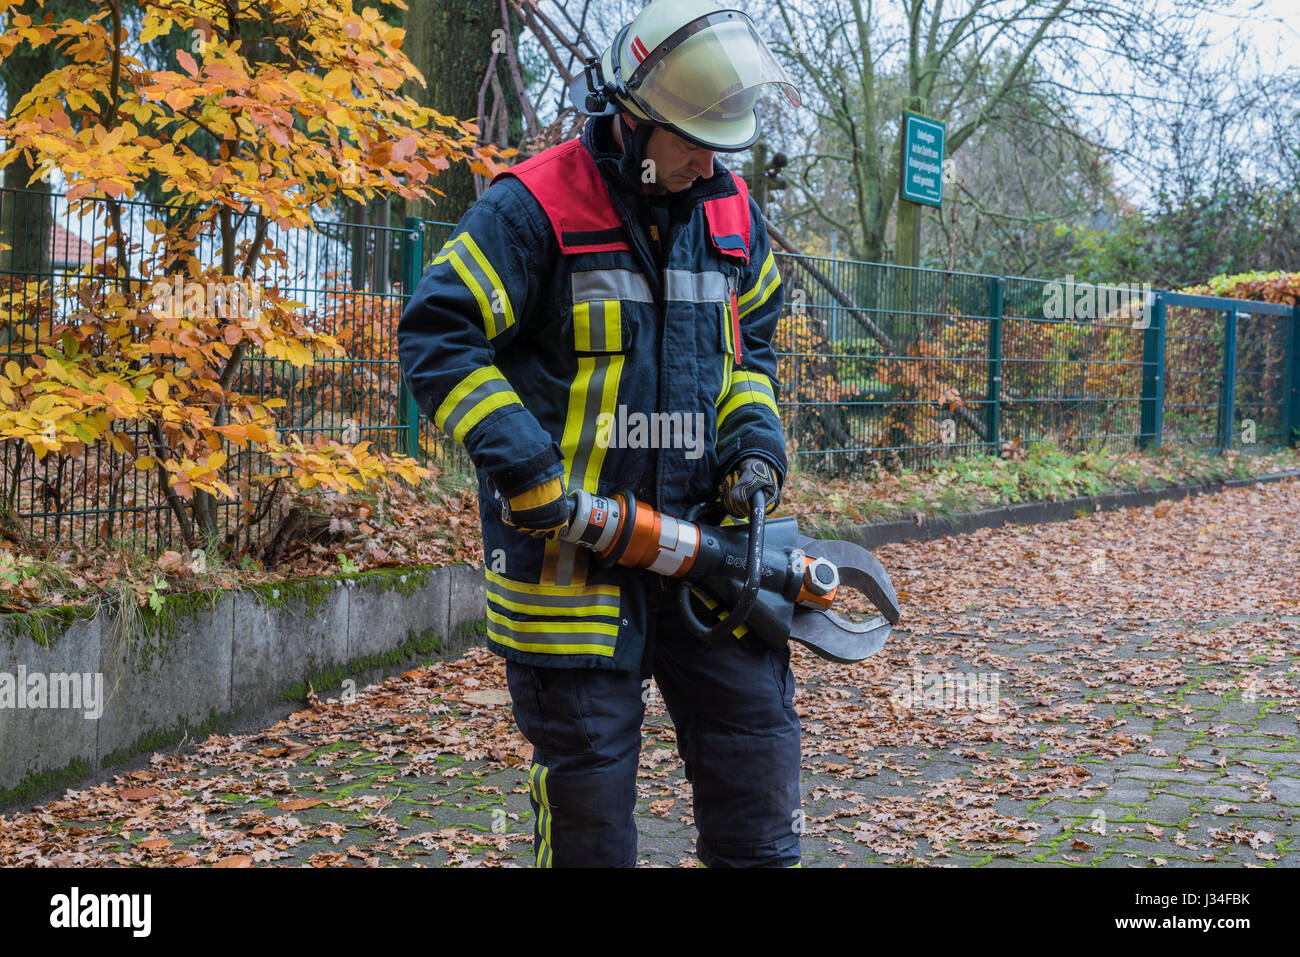 German firefighter in action with pliers for emergency use - Stock Image